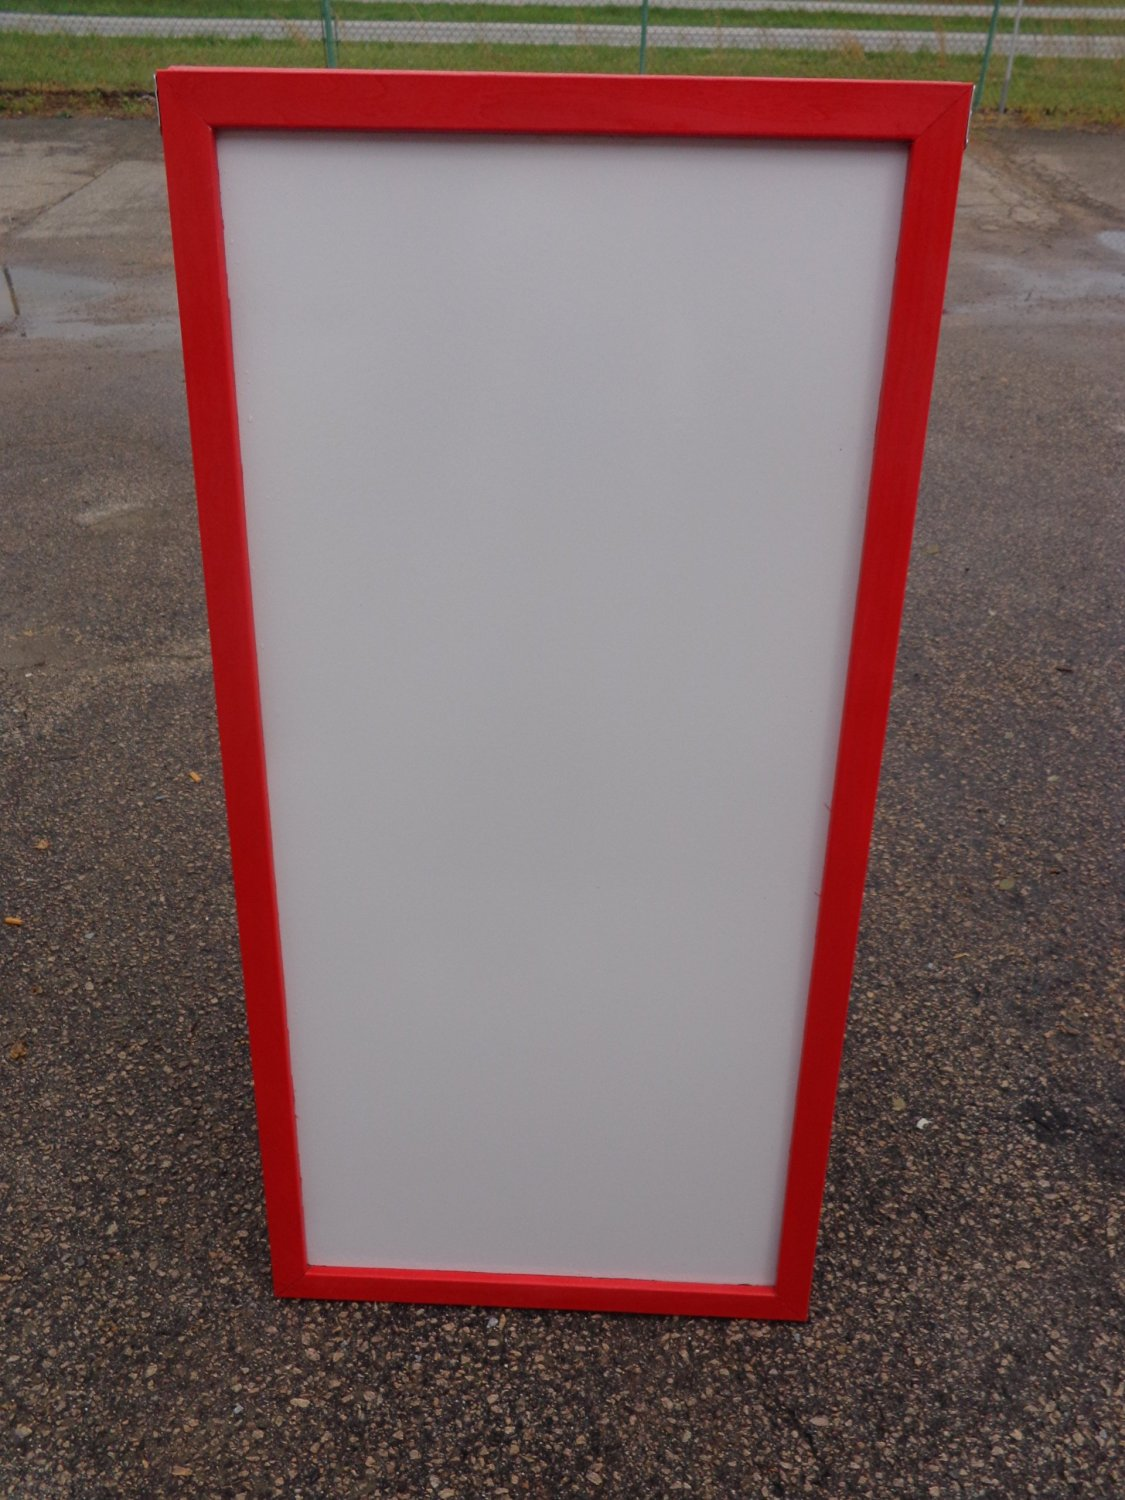 Cheap 48 X 24 Frame, find 48 X 24 Frame deals on line at Alibaba.com